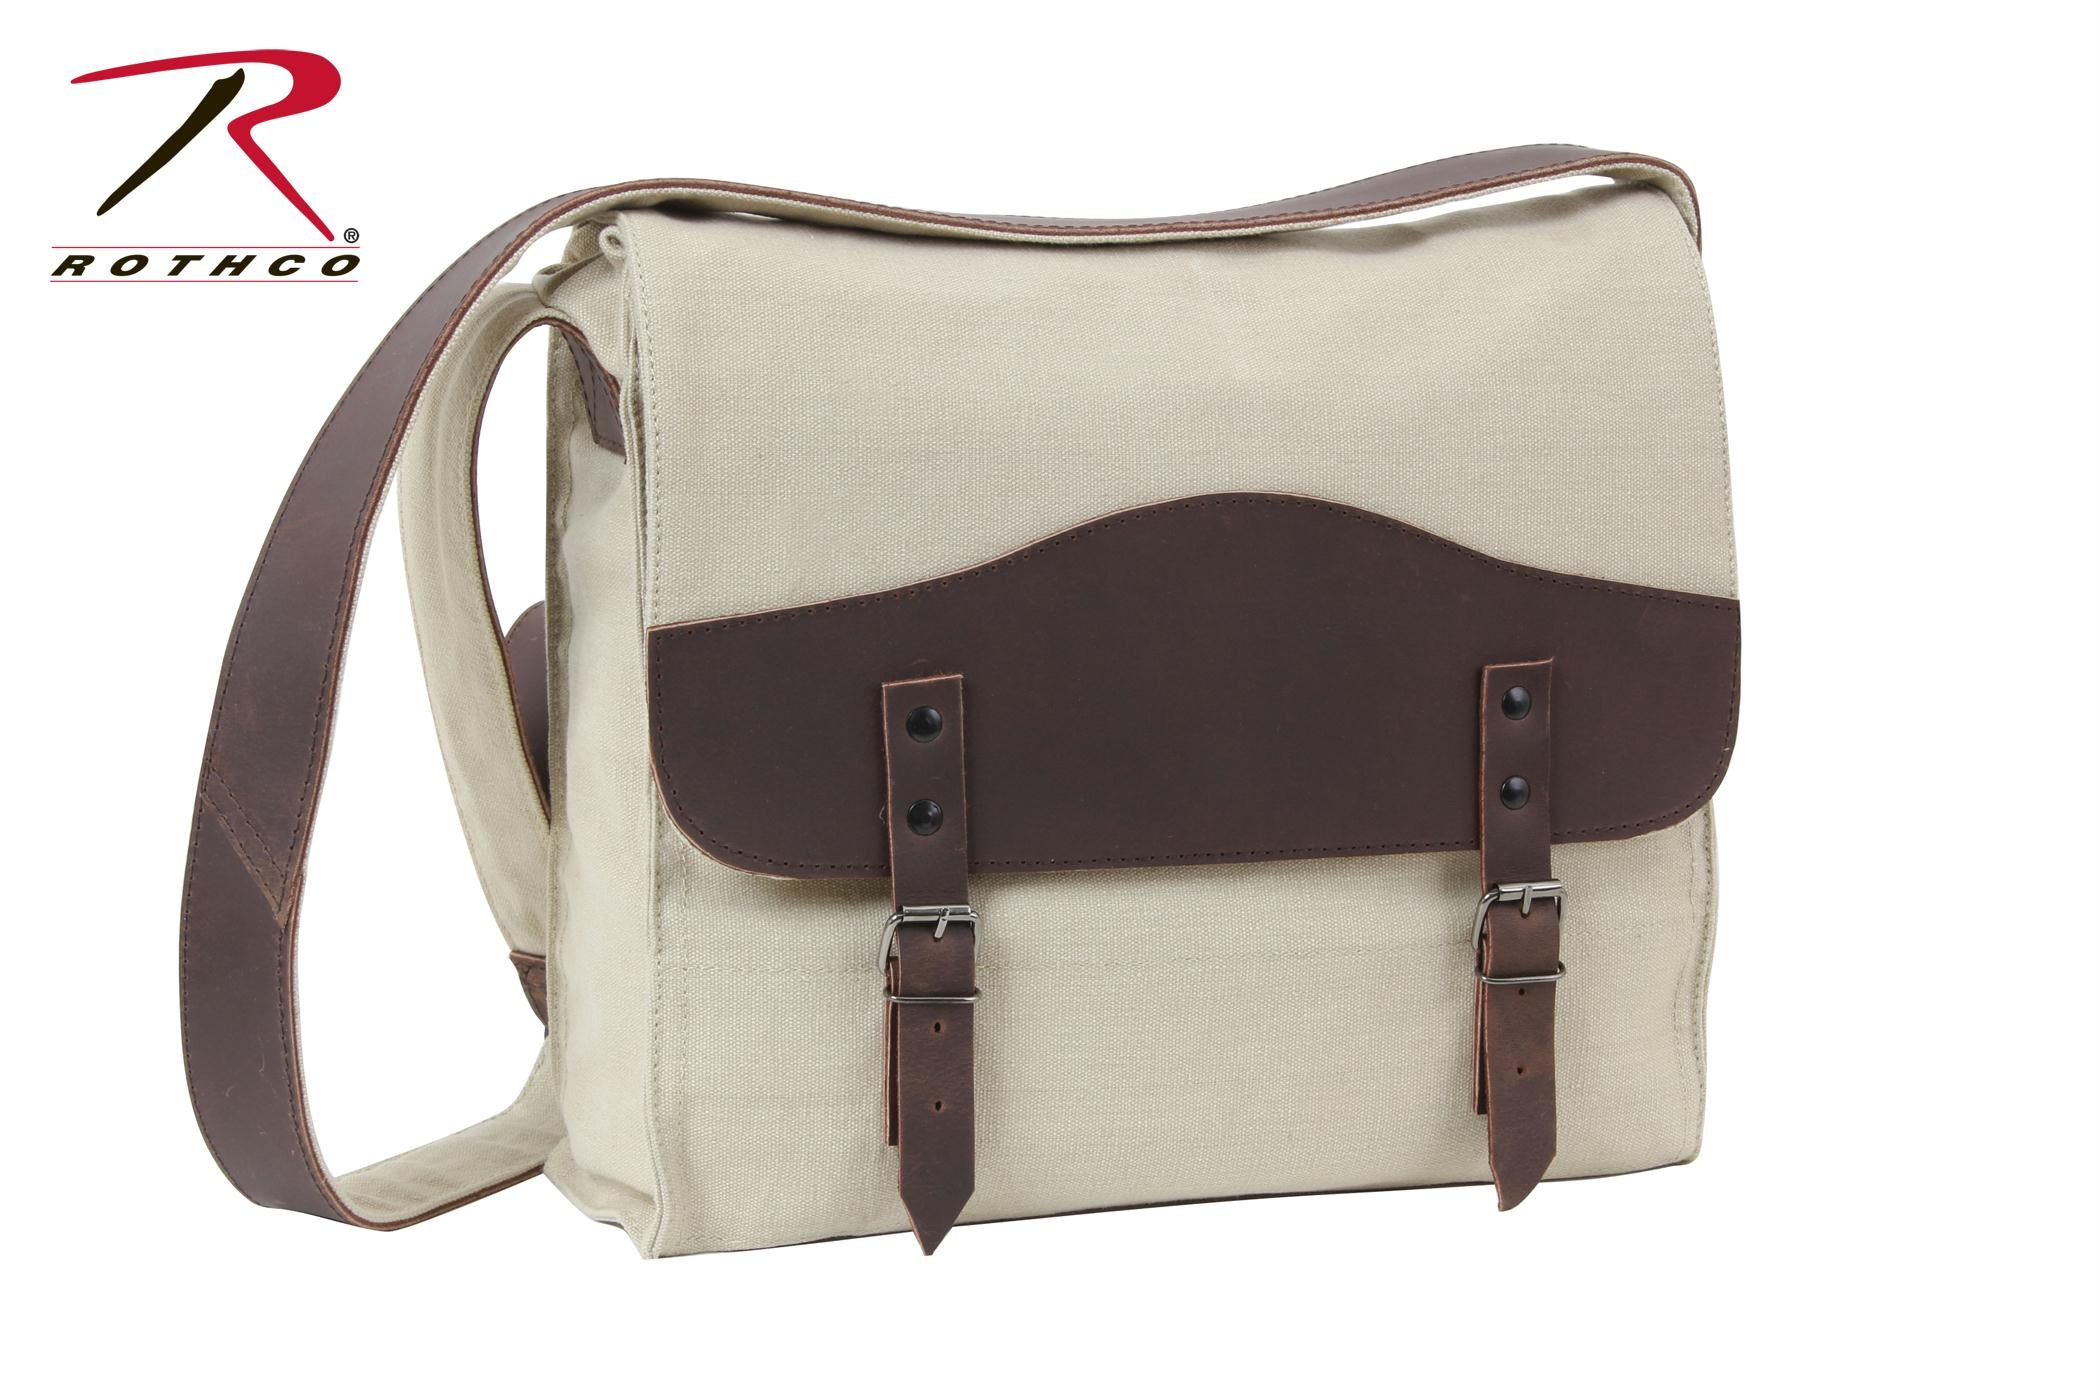 Rothco Vintage Canvas Medic Bag w/ Leather Accents - Khaki